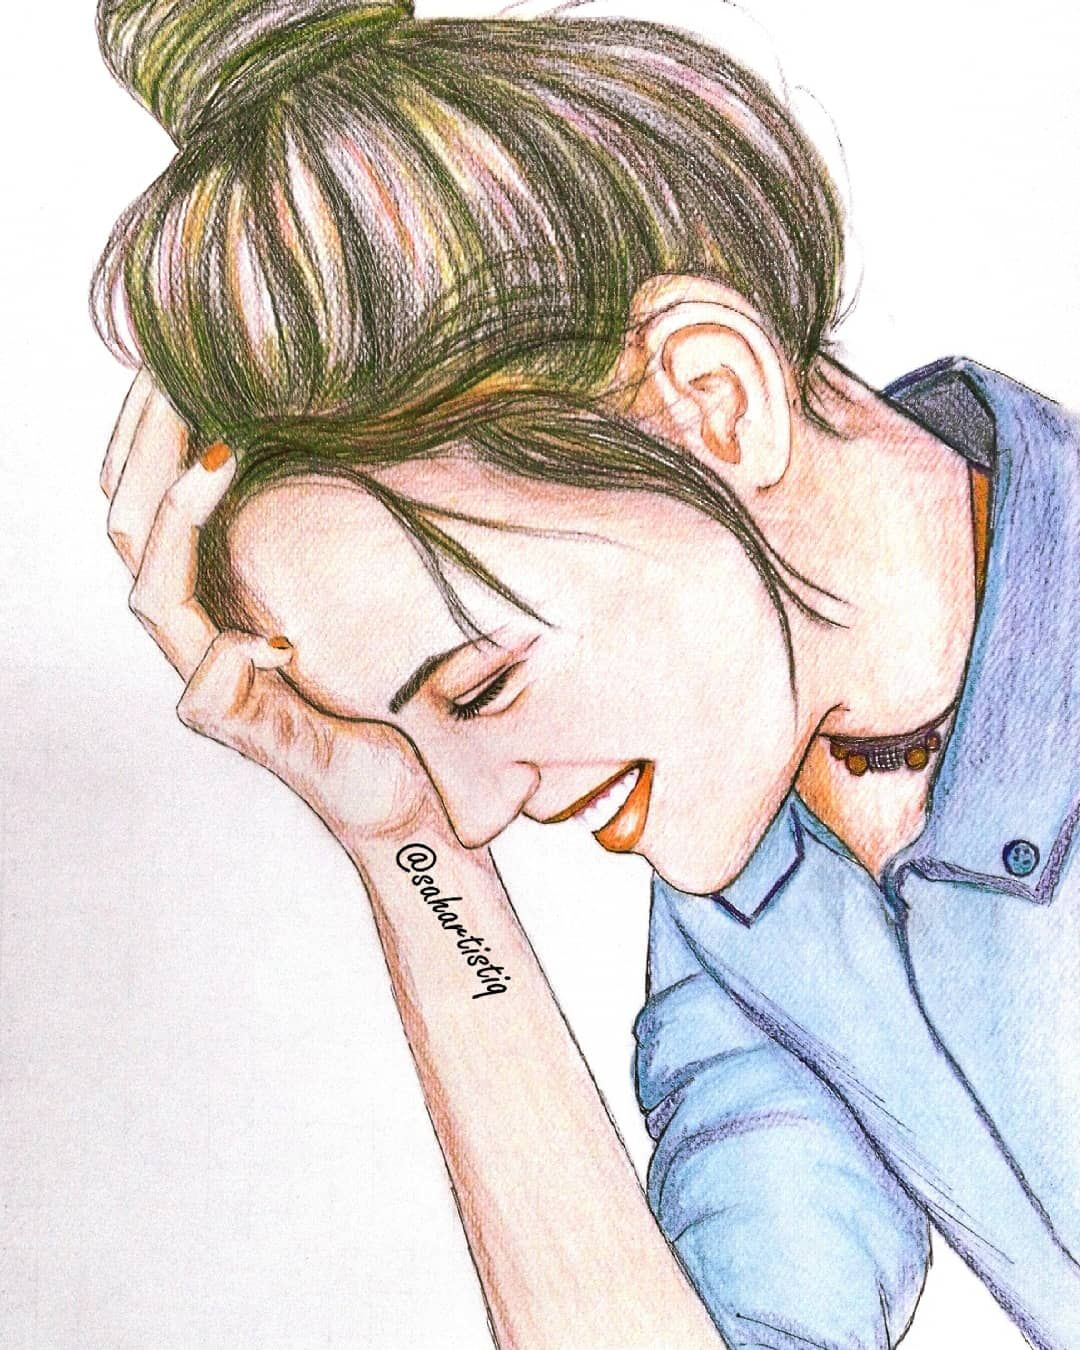 Sketch Of A Girl Art Drawing Sketch Pencil Colours Love Sketching Artist Artwork Saha Color Pencil Sketch Color Pencil Art Art Drawings Beautiful